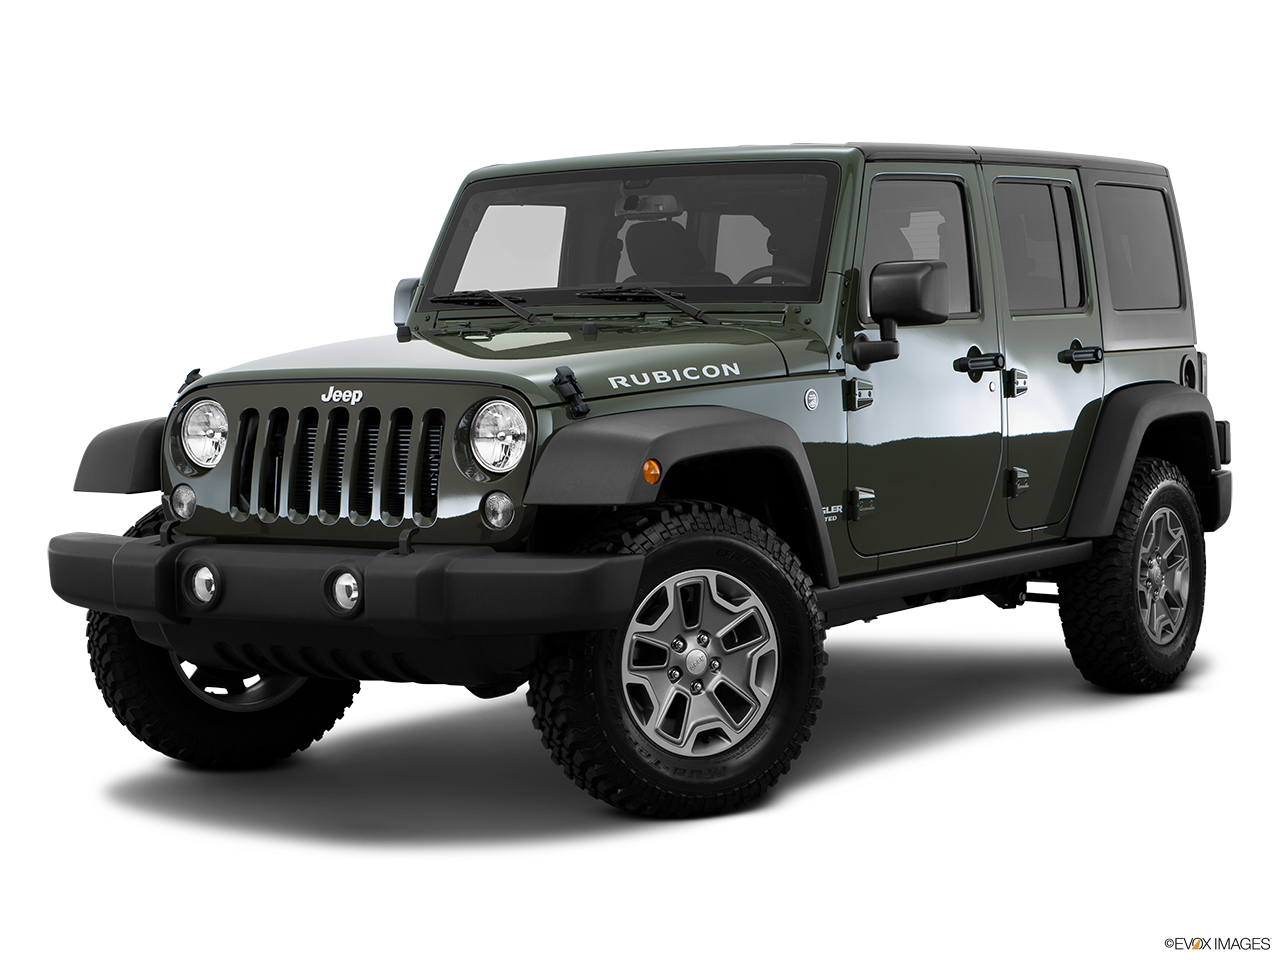 Test Drive A 2016 Jeep Wrangler Unlimited at Moss Bros Chrysler Dodge Jeep Ram San Bernardino in San Bernardino